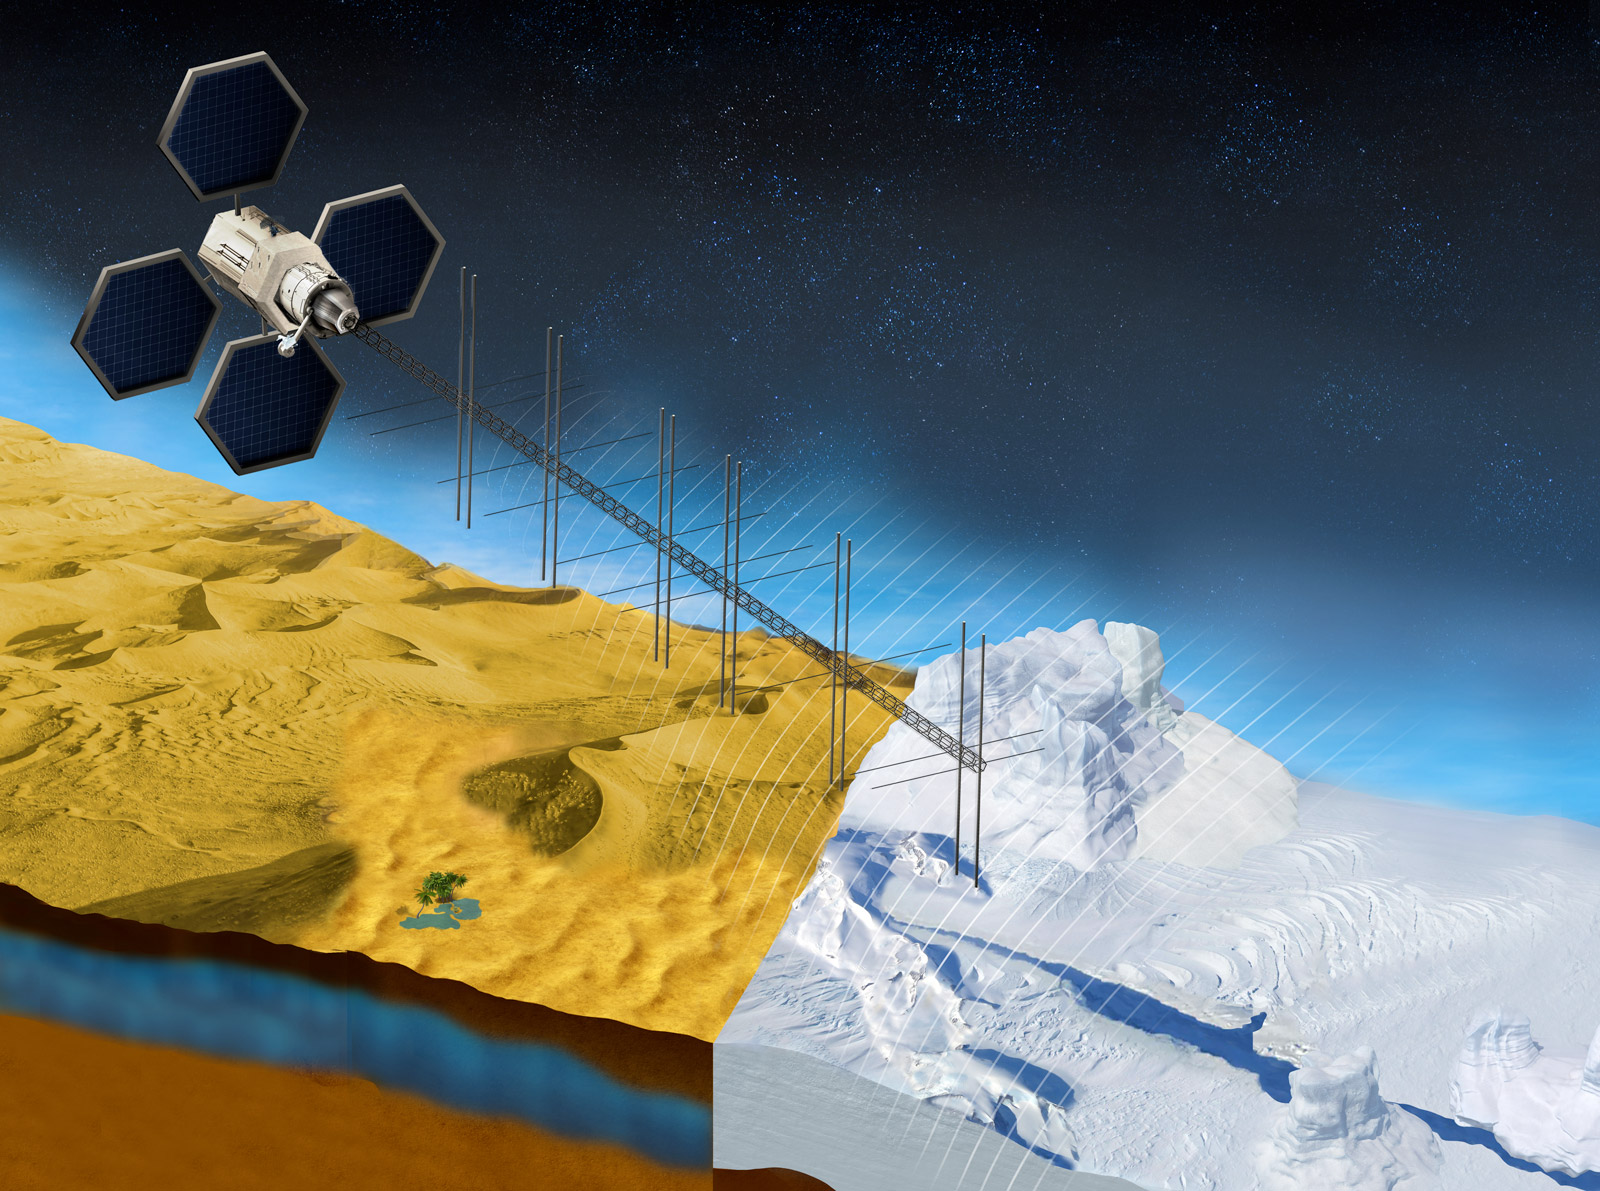 This illustration shows what a satellite with a proposed radar instrument for the mission could look like.